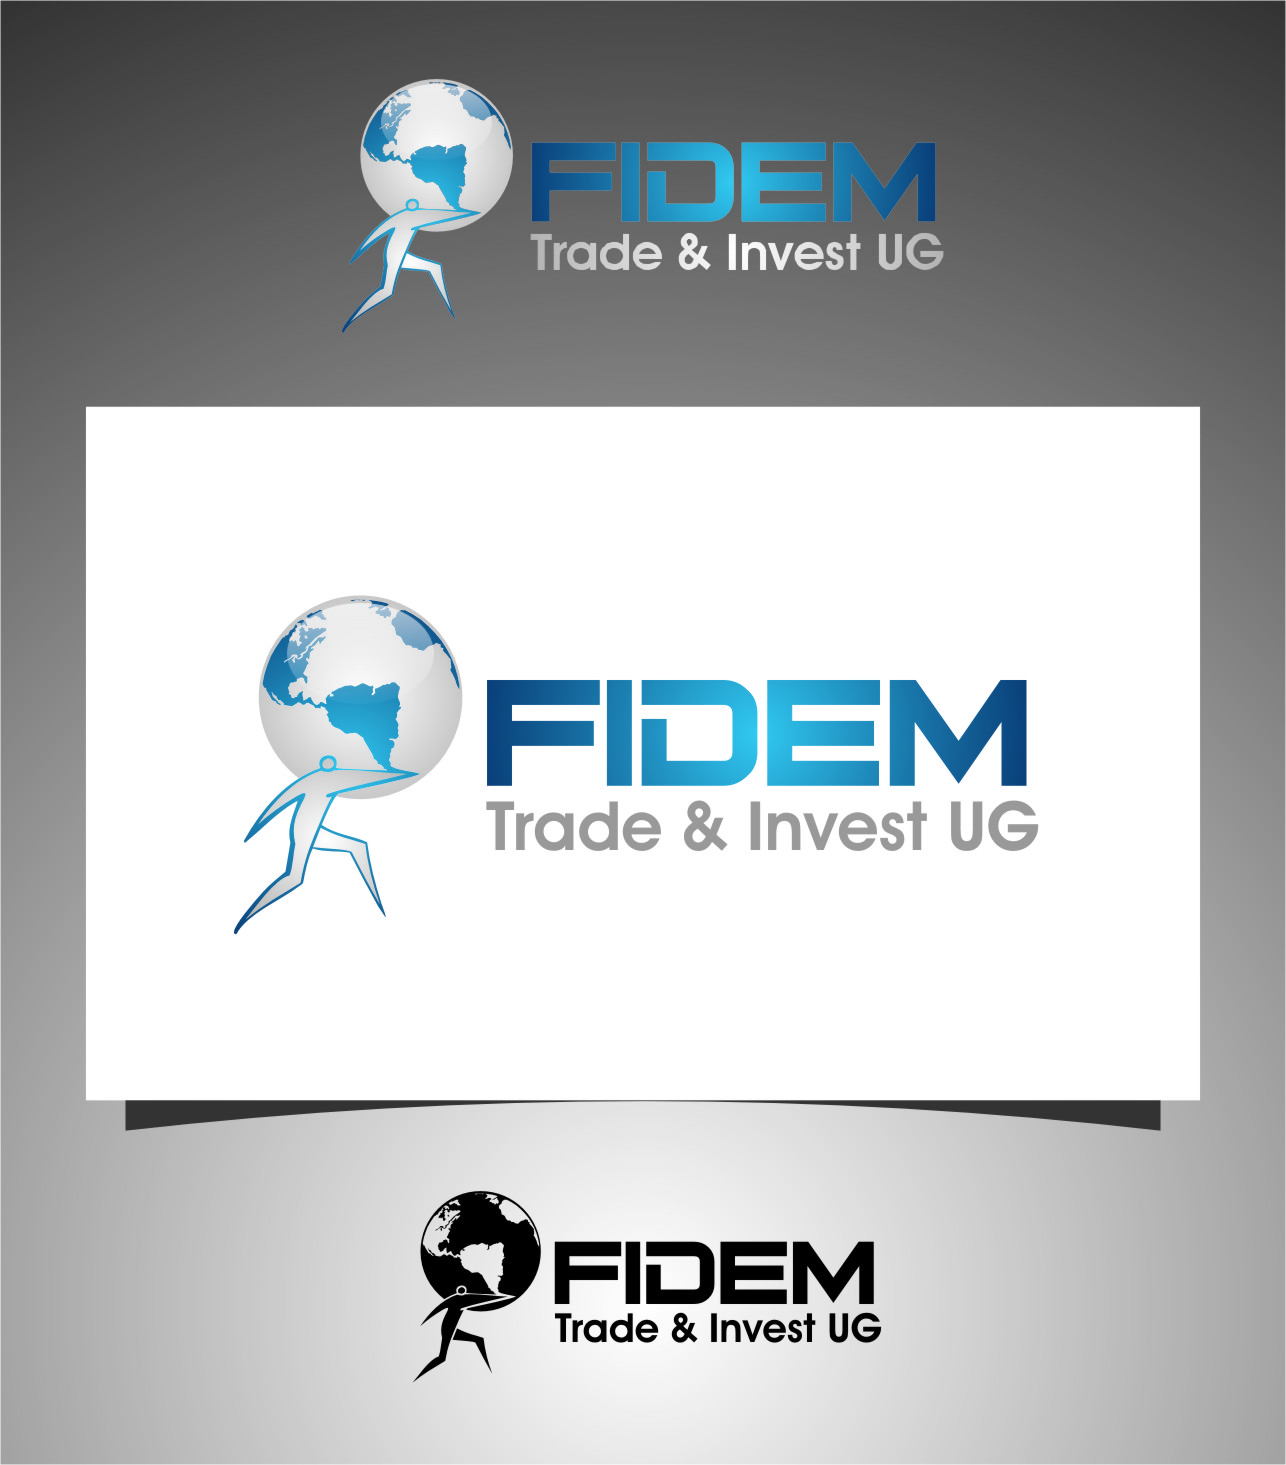 Logo Design by Ngepet_art - Entry No. 114 in the Logo Design Contest Professional Logo Design for FIDEM Trade & Invest UG.